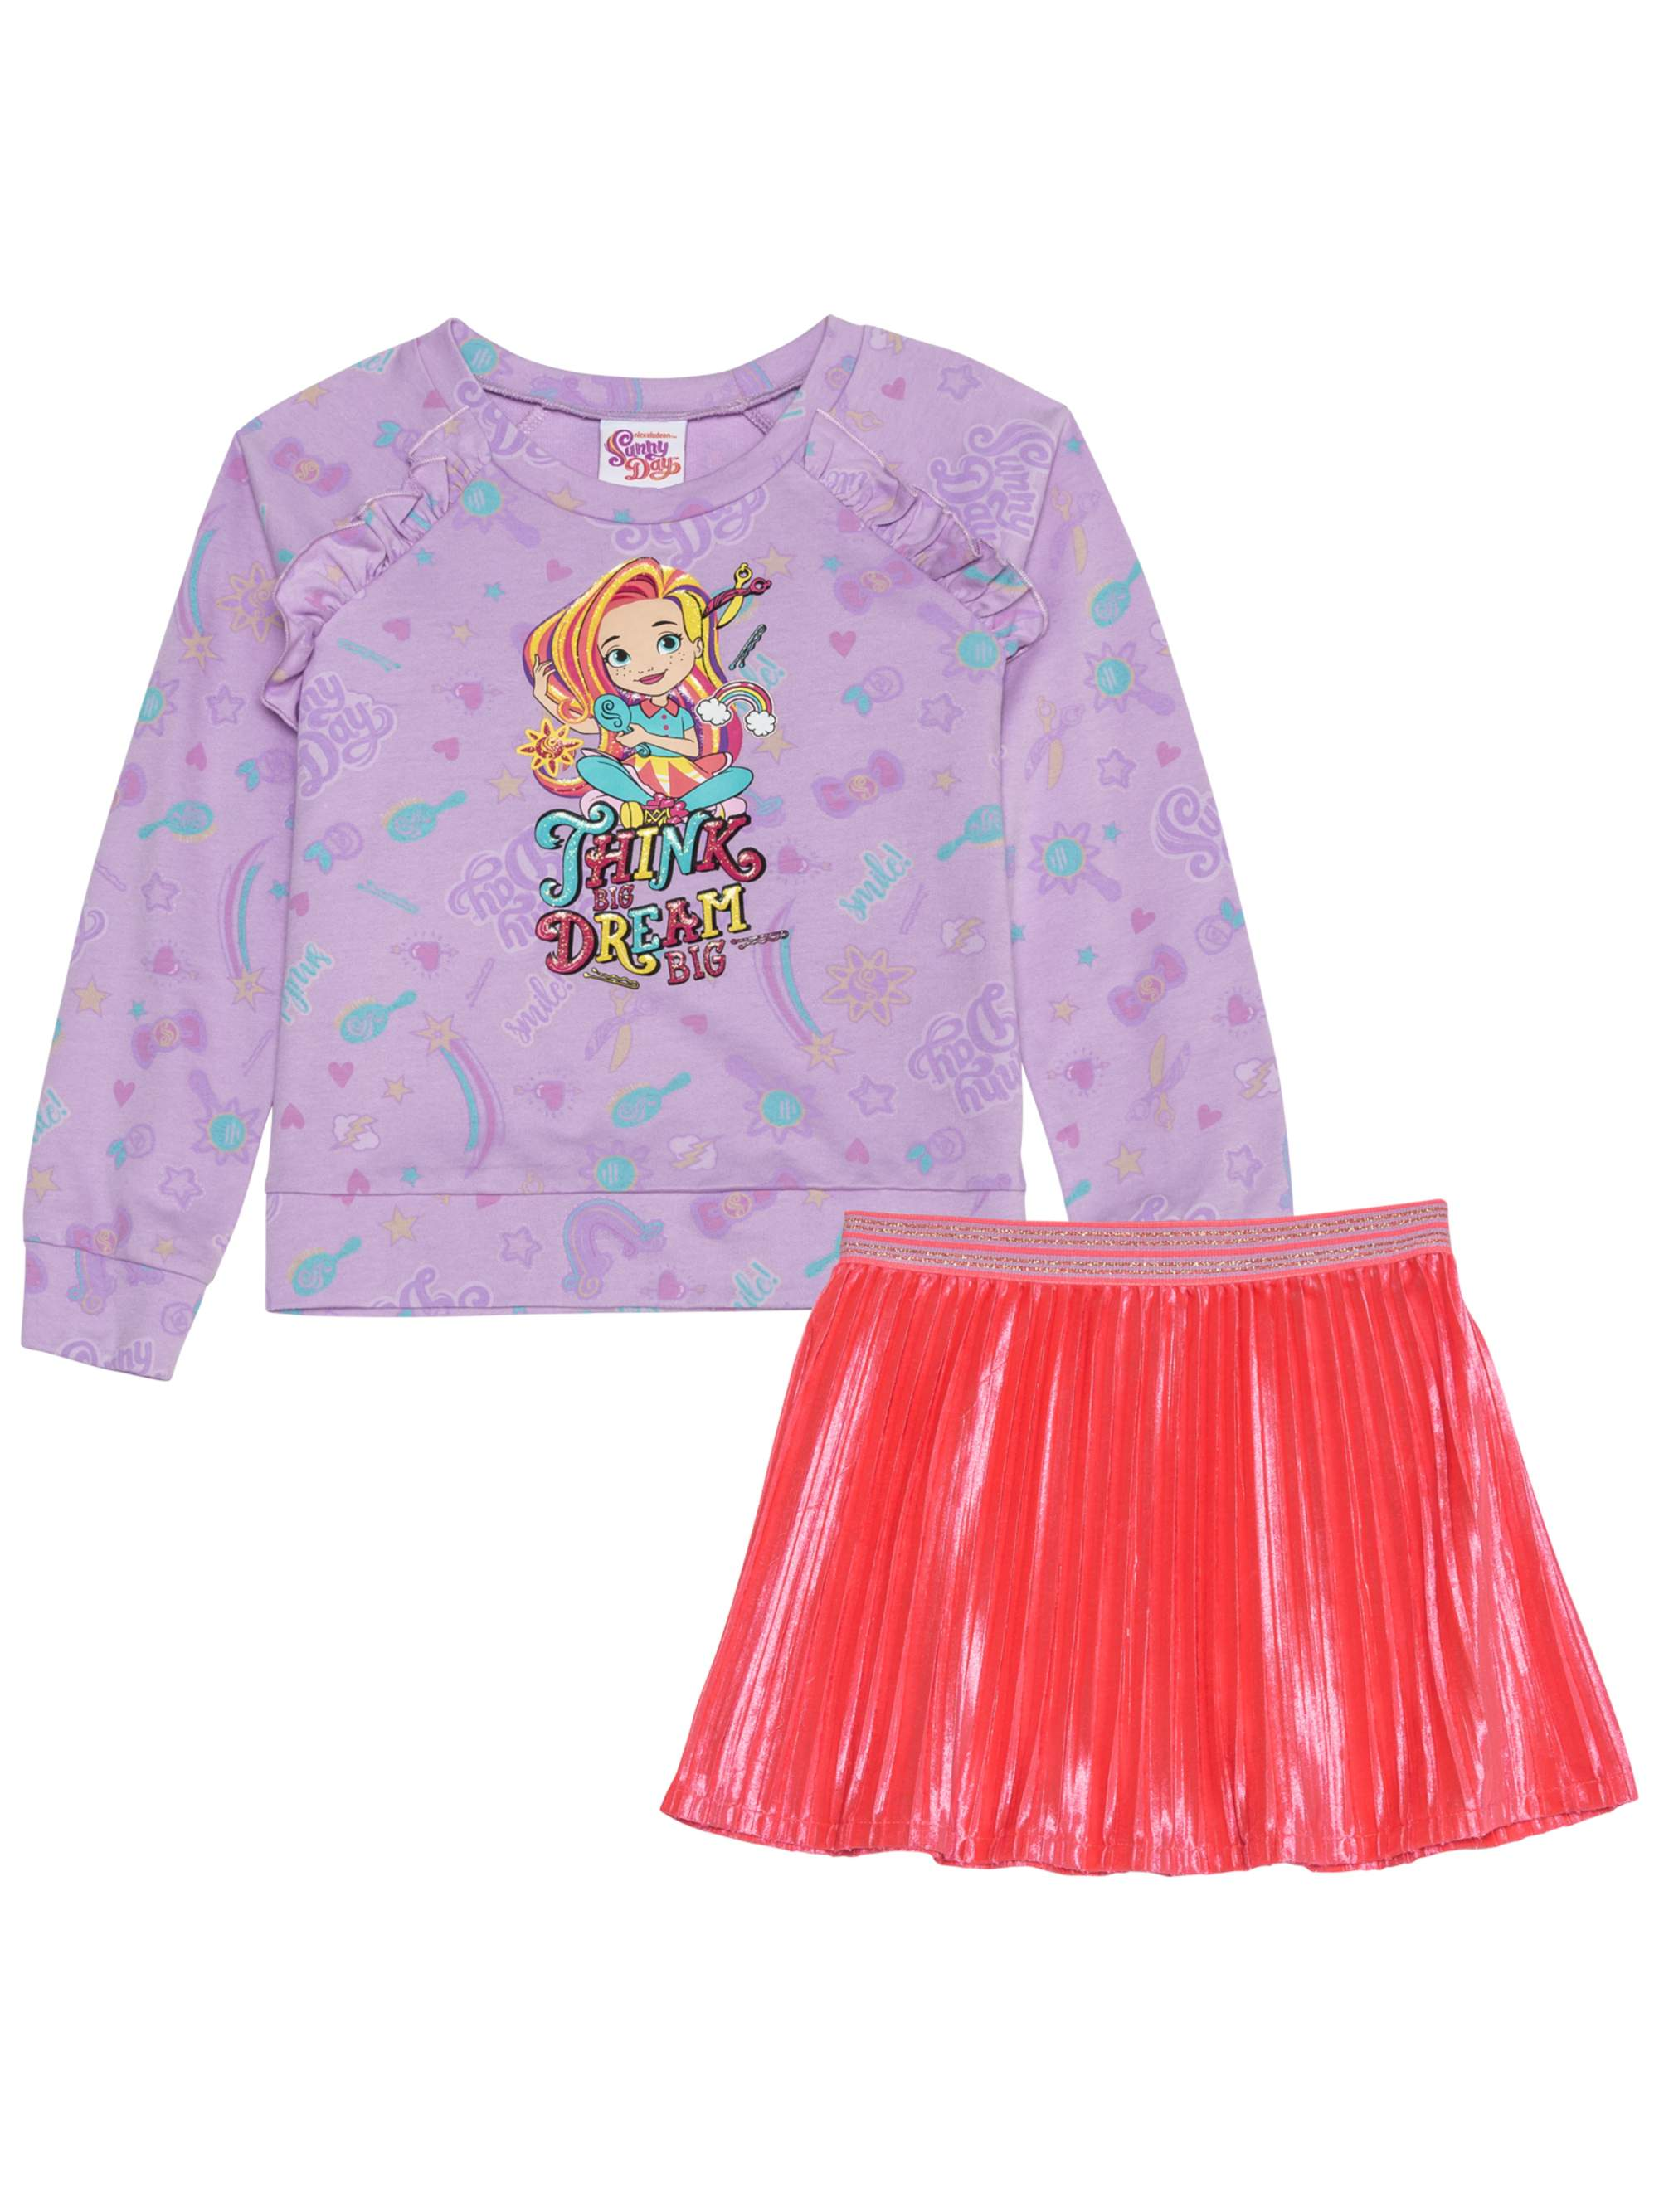 Graphic Sweatshirt and Pleated Skirt, 2-Piece Outfit Set (Little Girls & Big Girls)